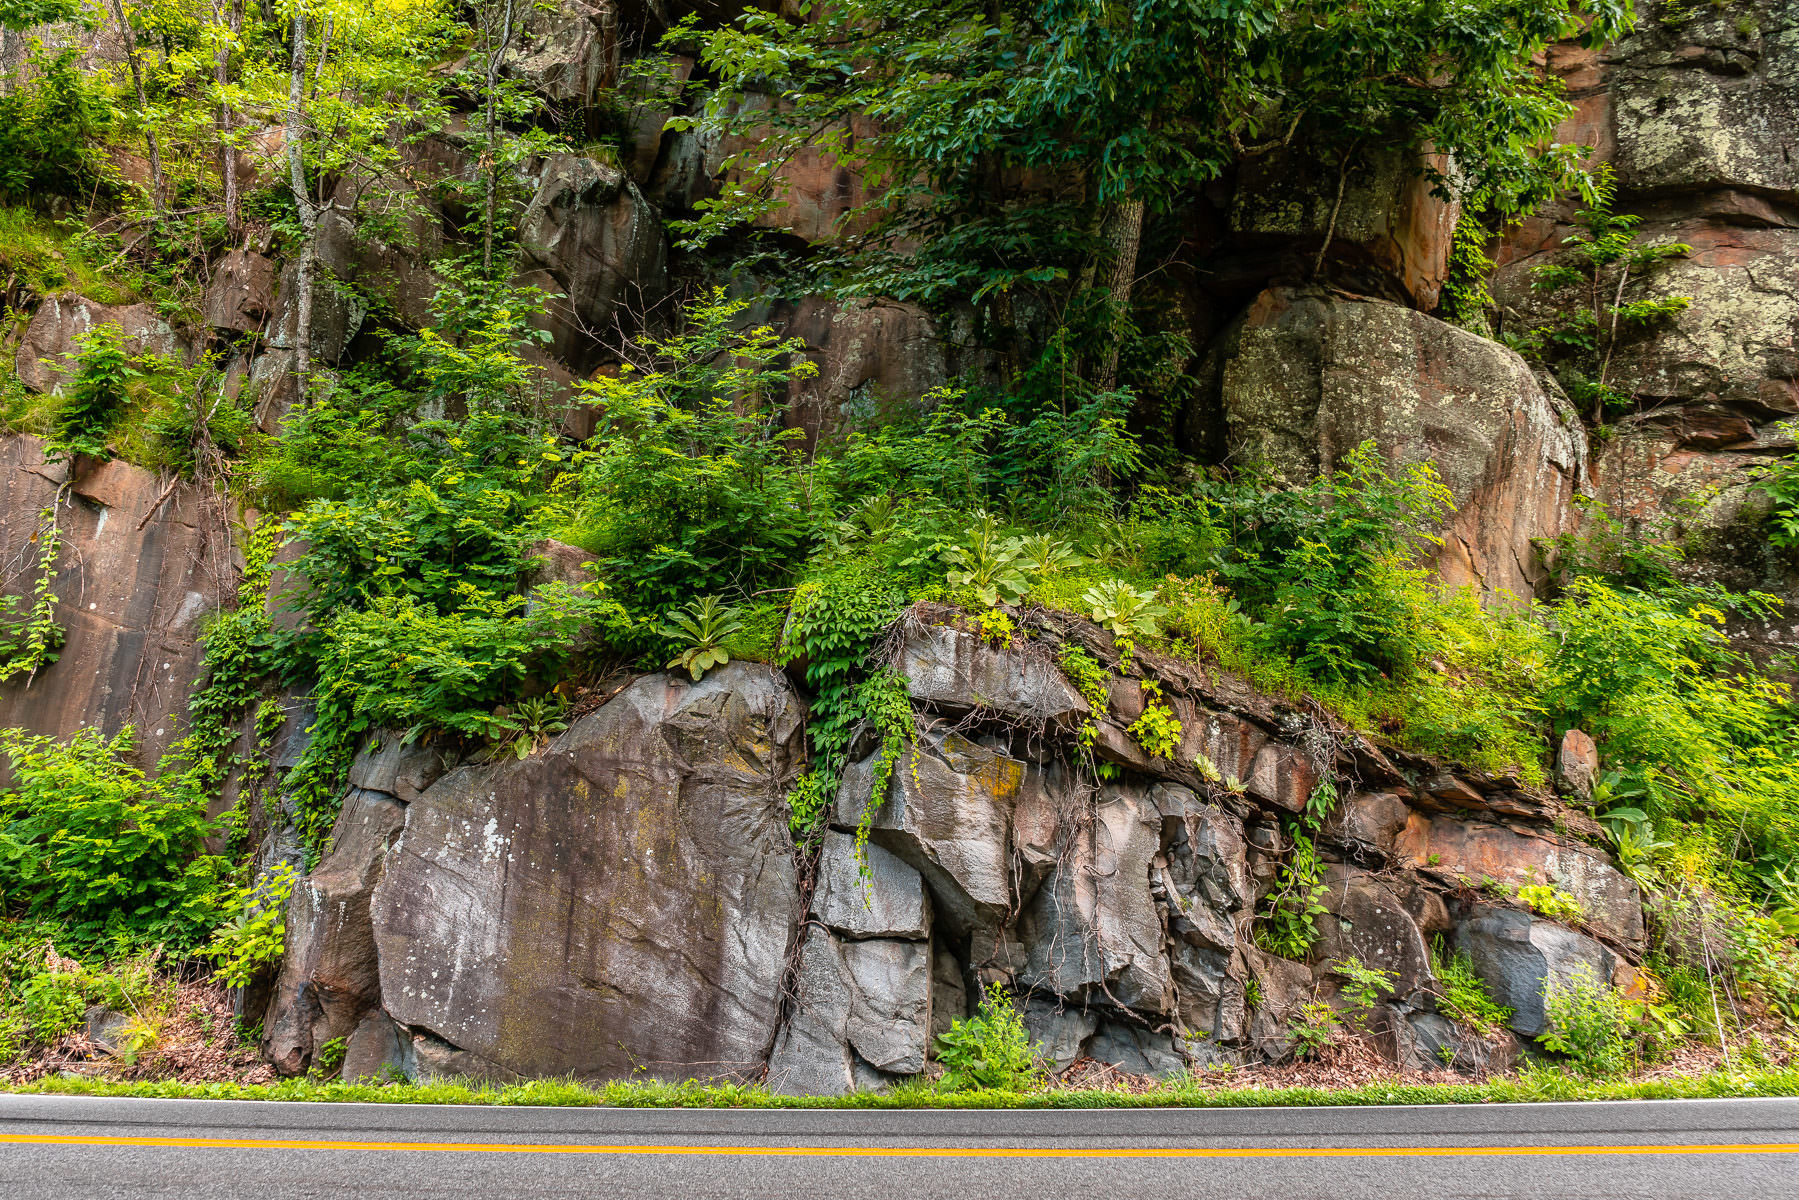 A rocky outcropping hugs the side of a road in the Great Smoky Mountains National Park, Tennessee.